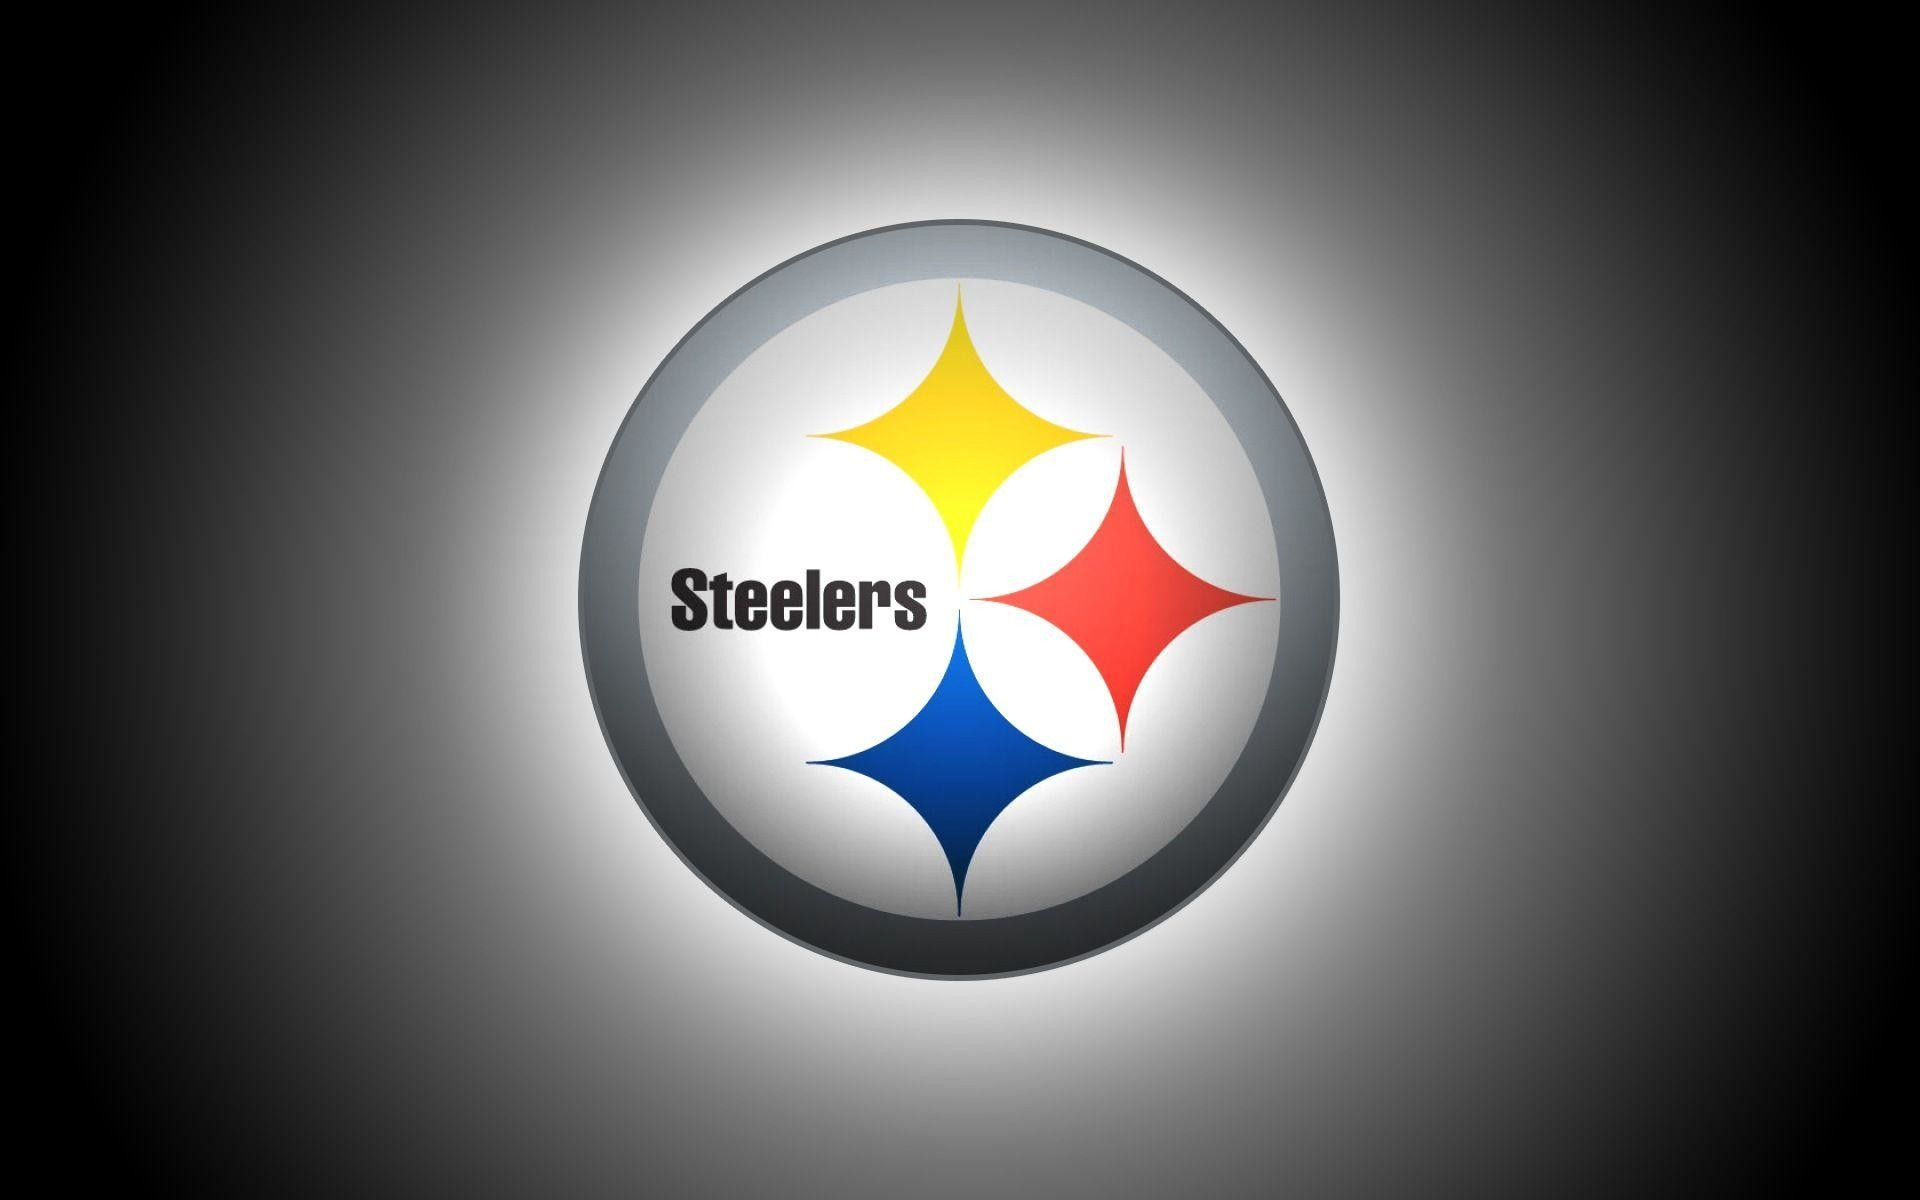 Page 797   Kelly clarkson photo , Wallpaper pittsburgh steelers hd .